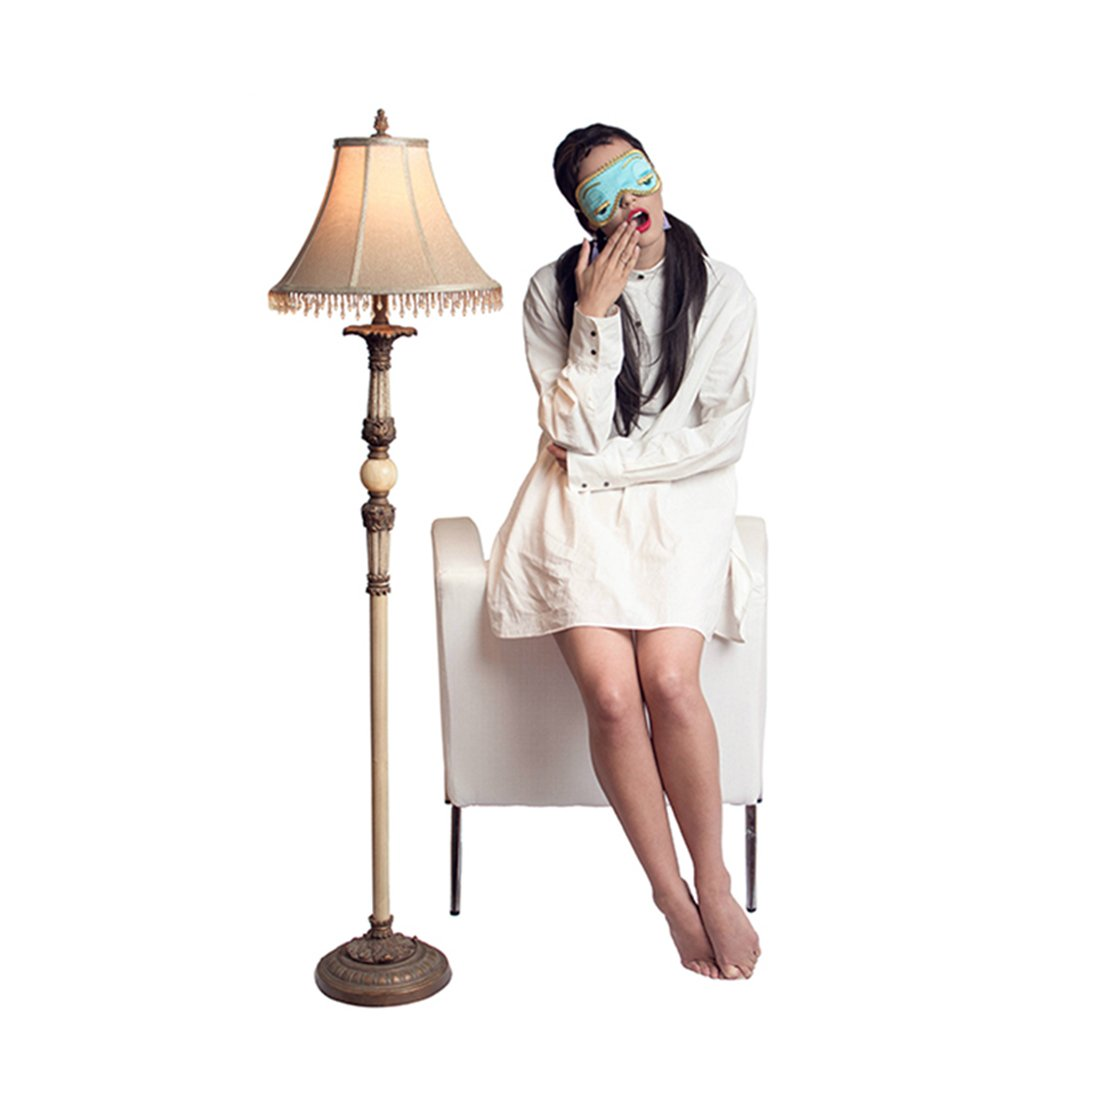 Utopiat Sleep Set - Audrey Hepburn Breakfast at Tiffany's, Shirt, Mask, Tassel Earrings by Utopiat